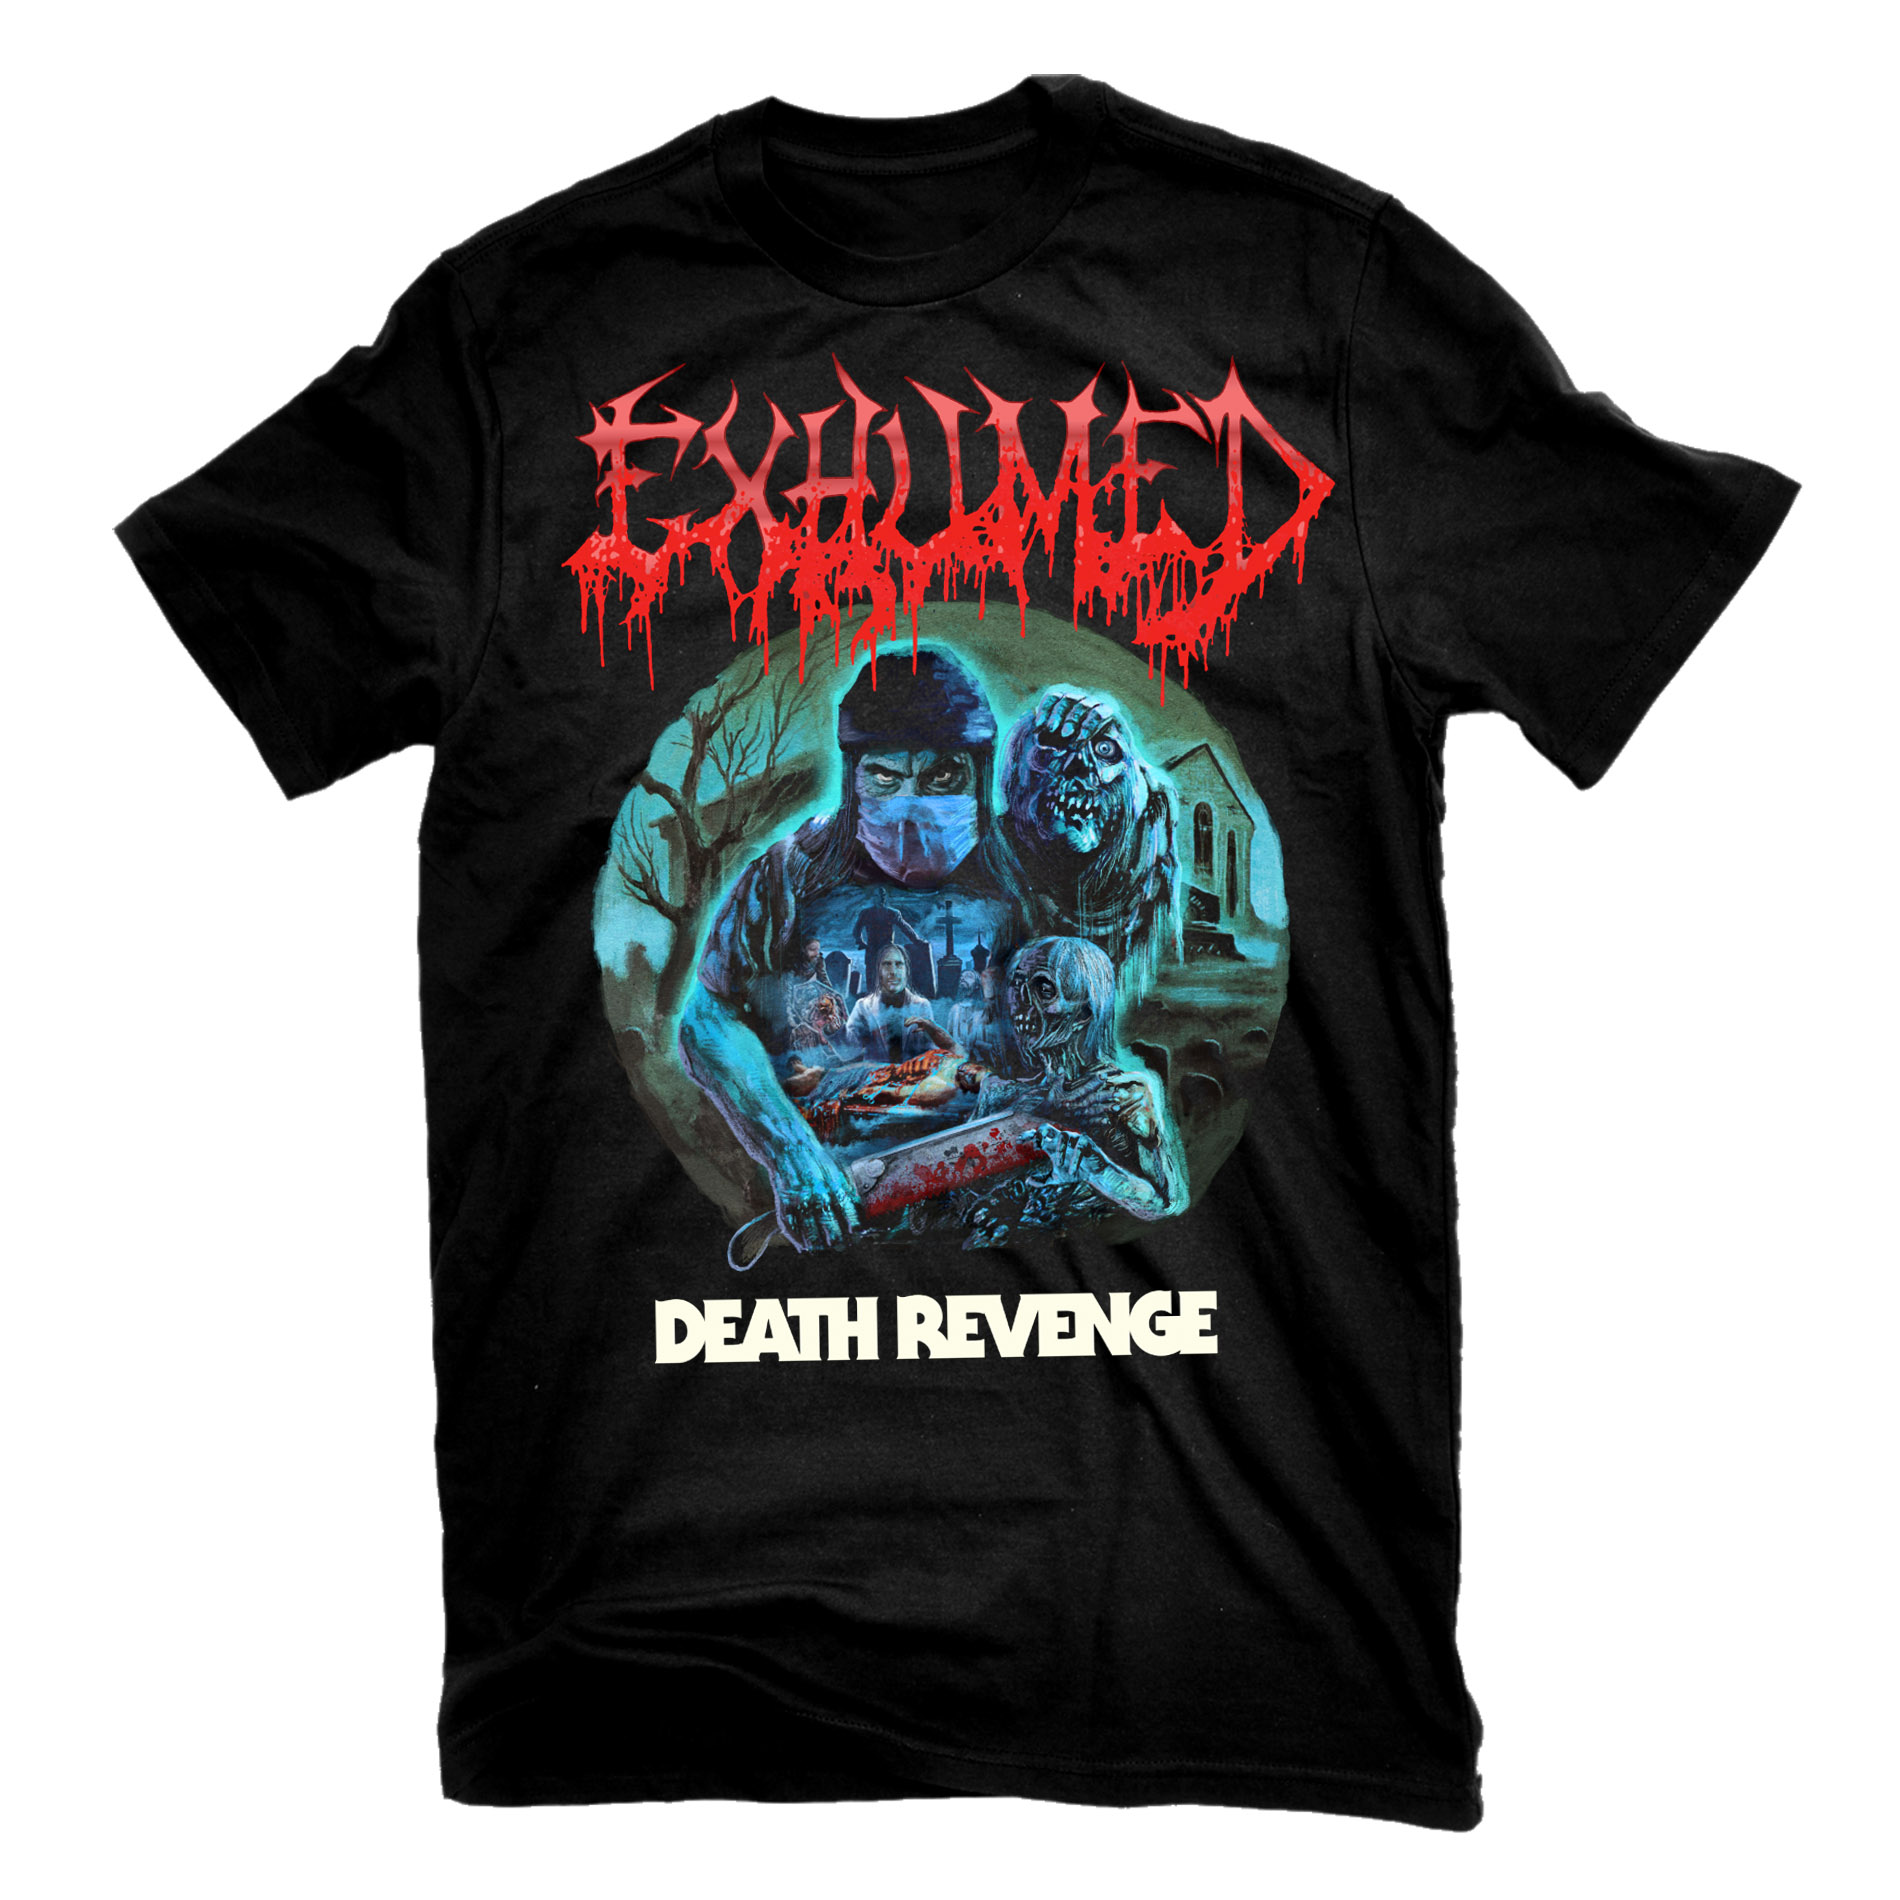 Death Revenge T Shirt + CD Bundle